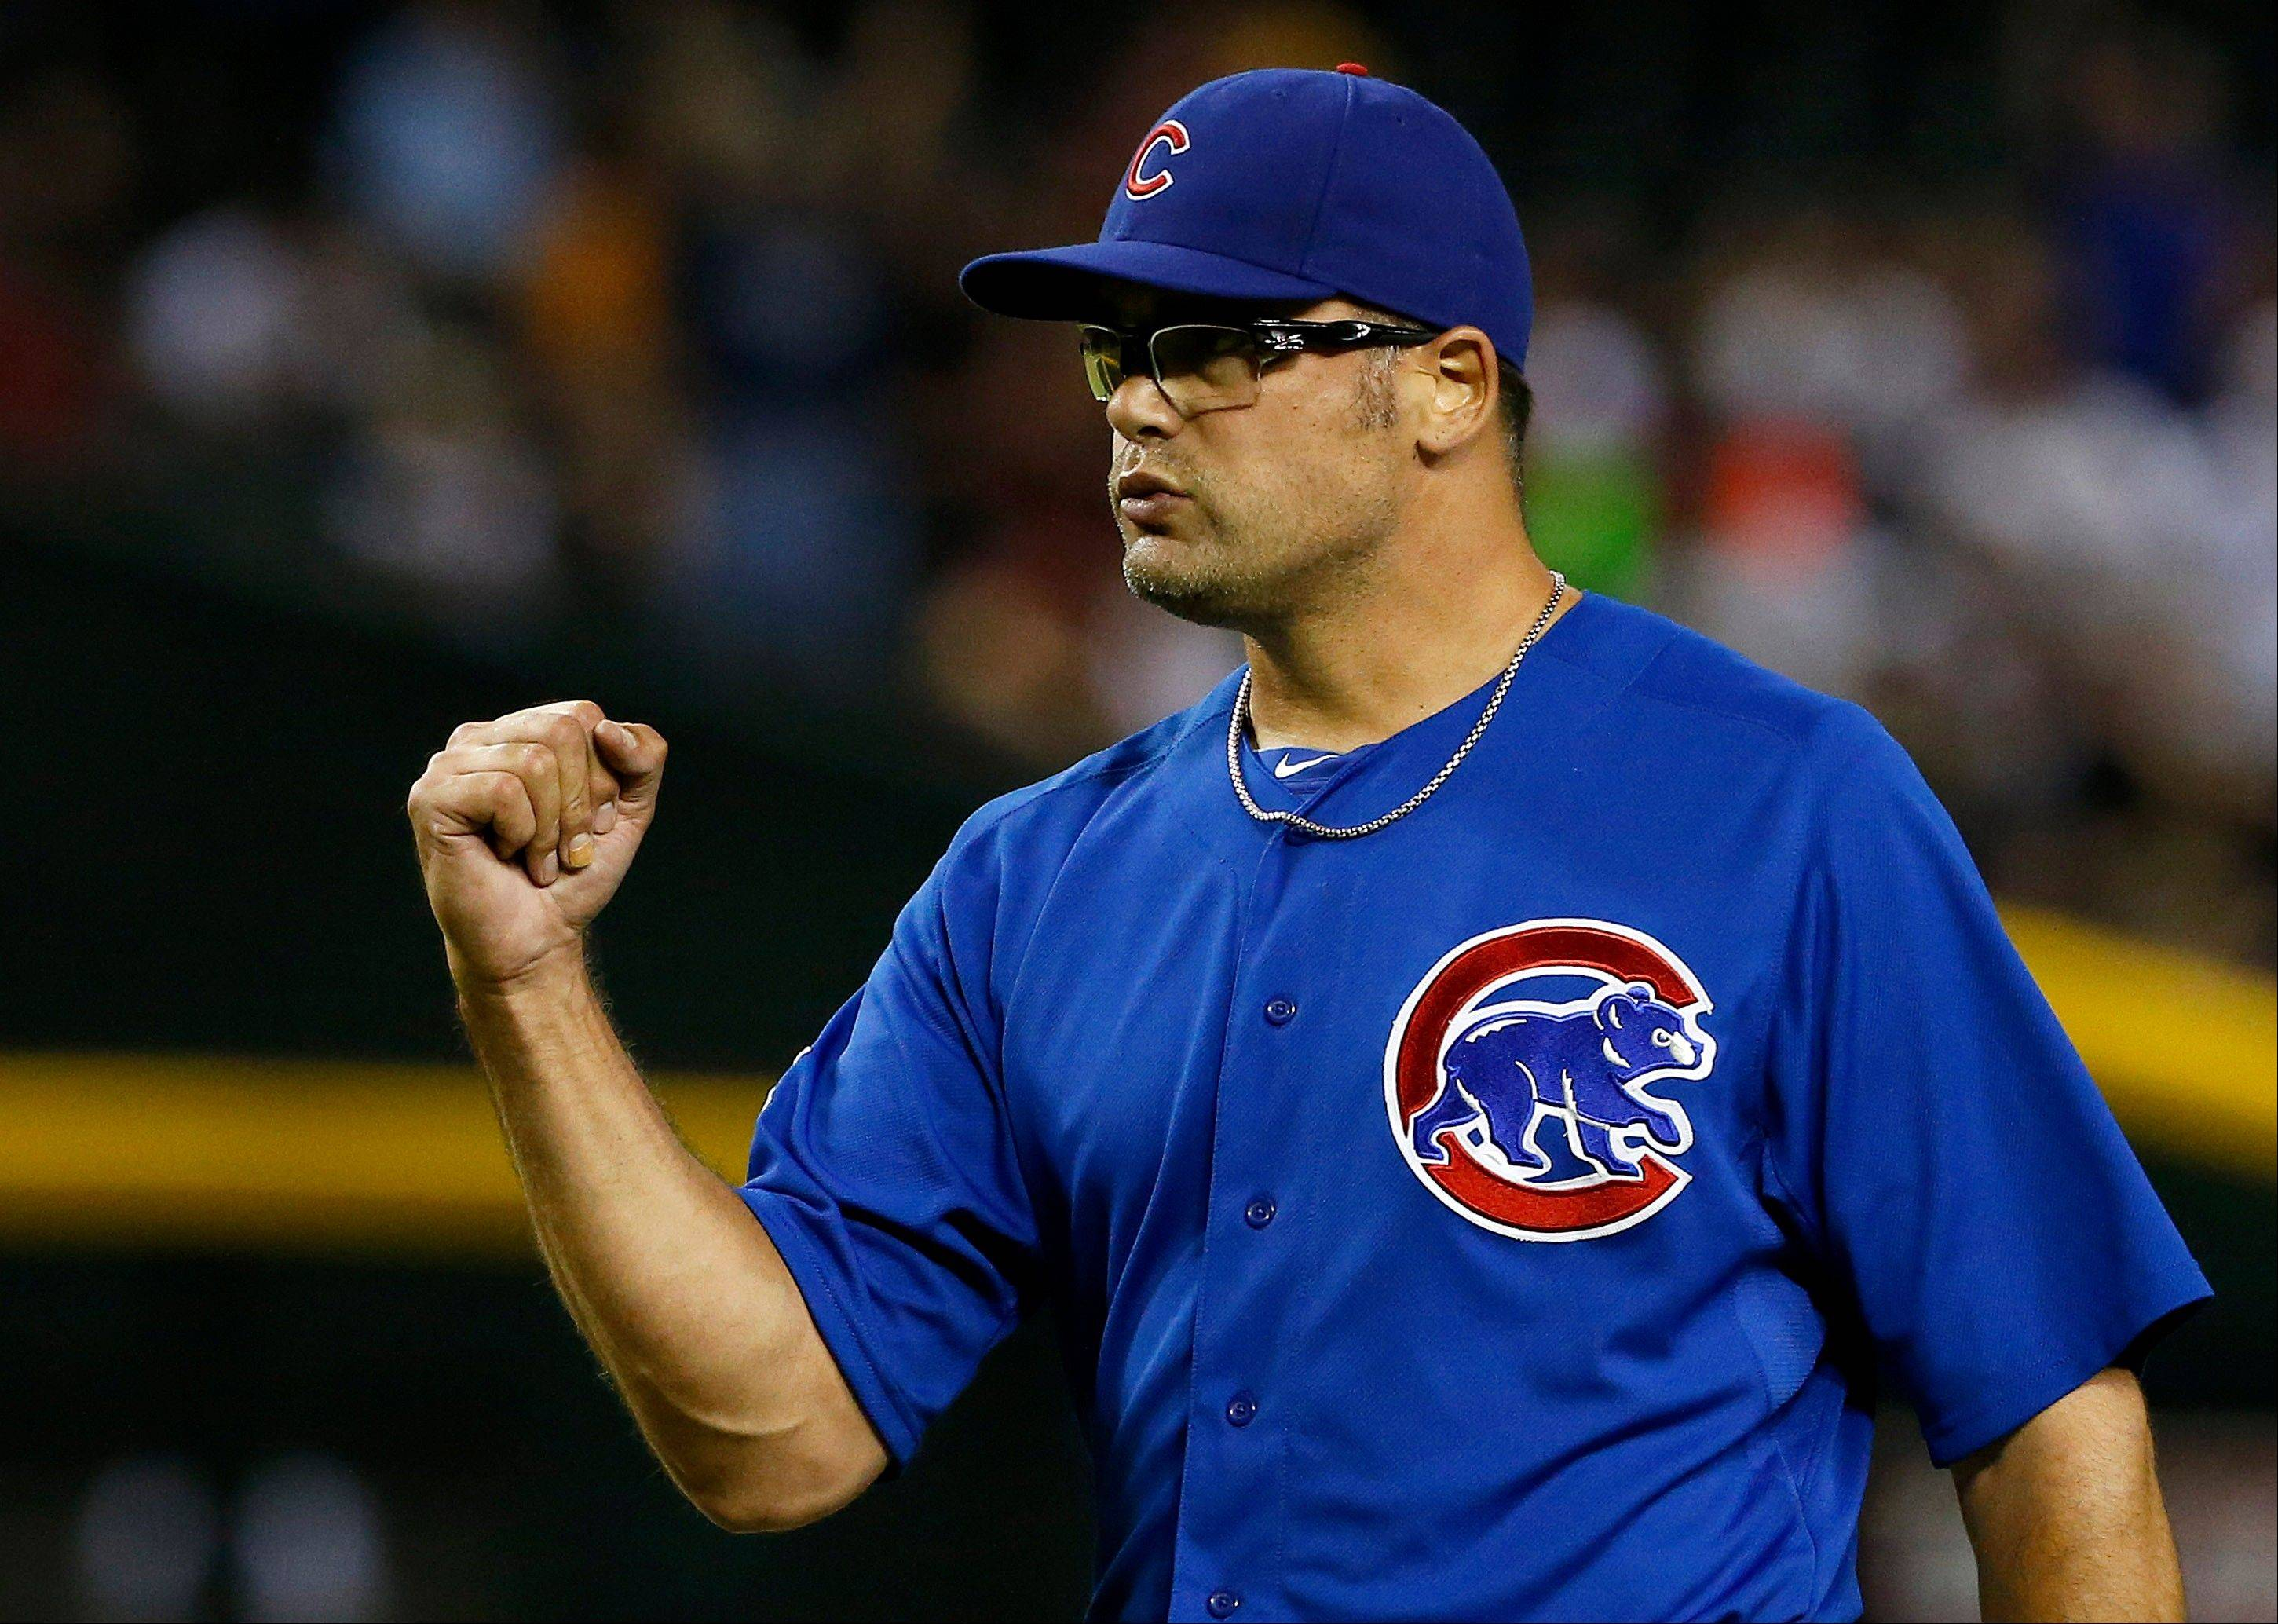 Kevin Gregg has saved 32 games for the Cubs this season, but he was enraged Friday when he felt the Cubs were going to hand the closer's role to Pedro Strop.